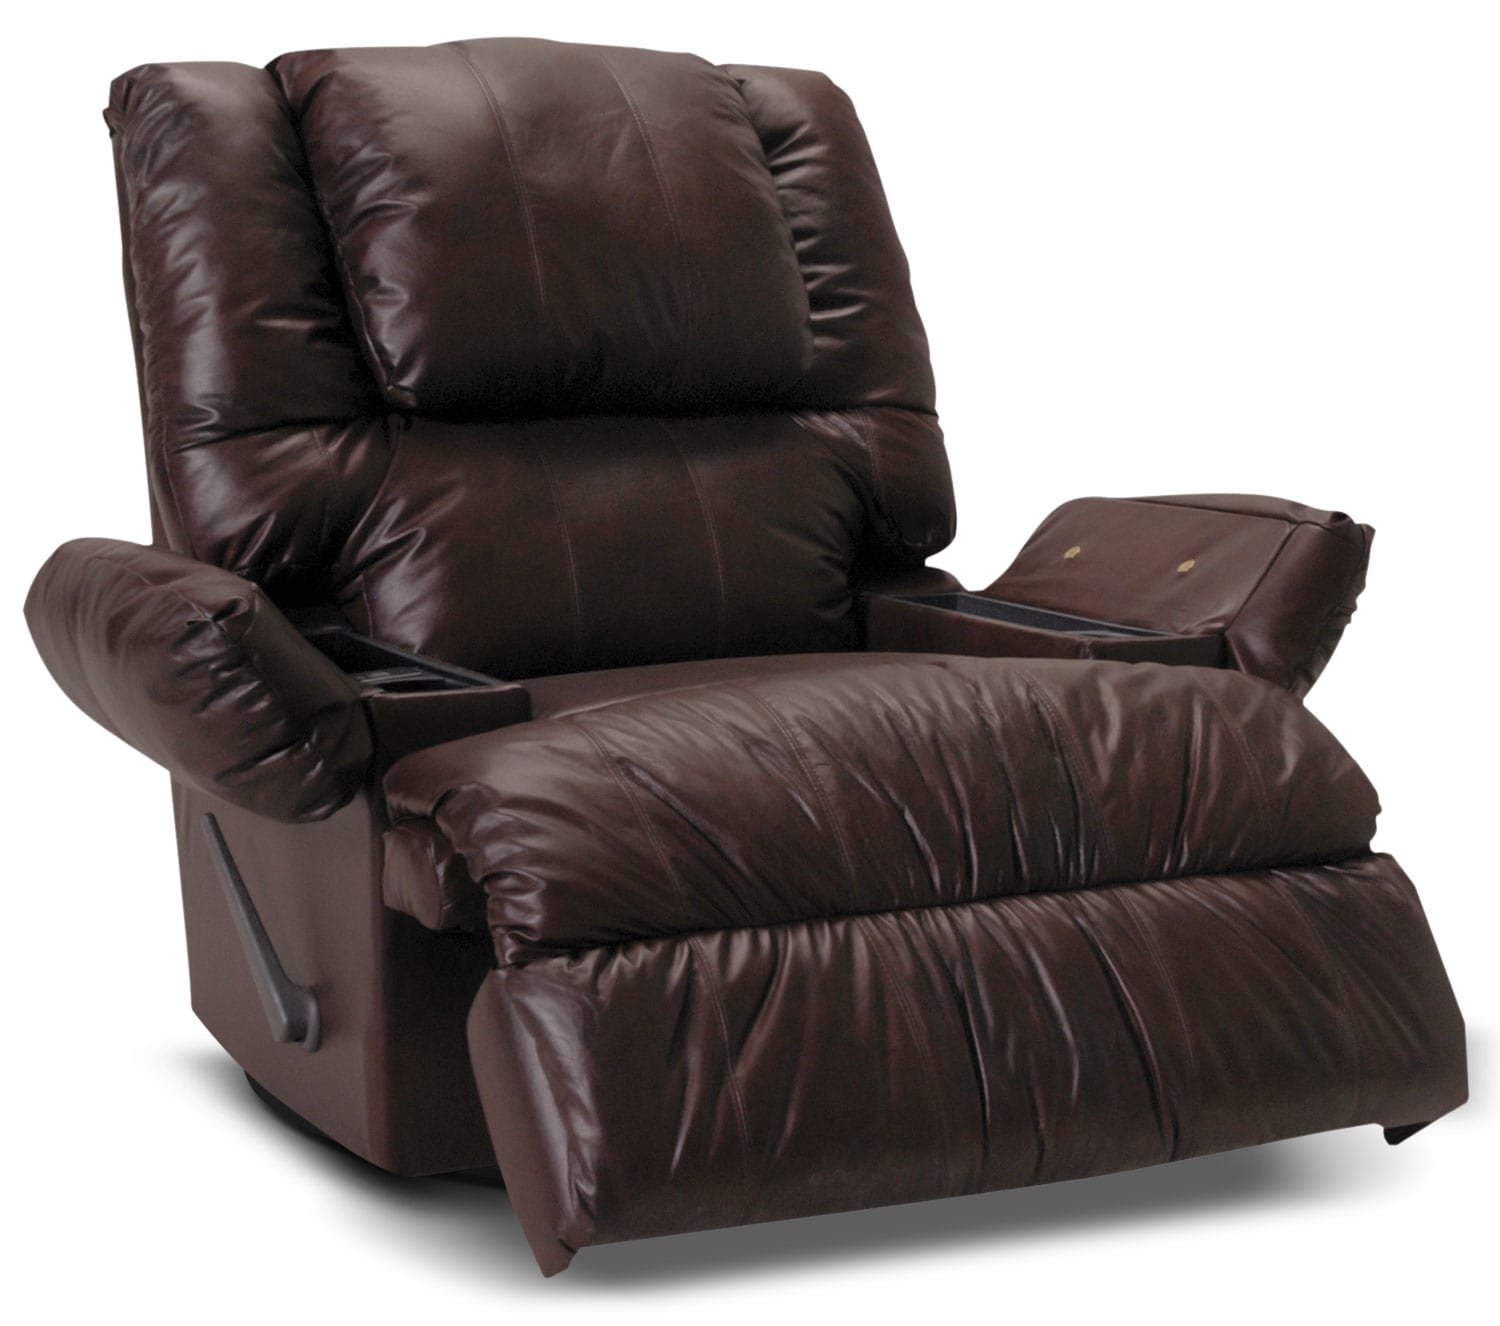 Designed2B Recliner 5598 Bonded Leather Swivel Rocker With Storage Arms Jav